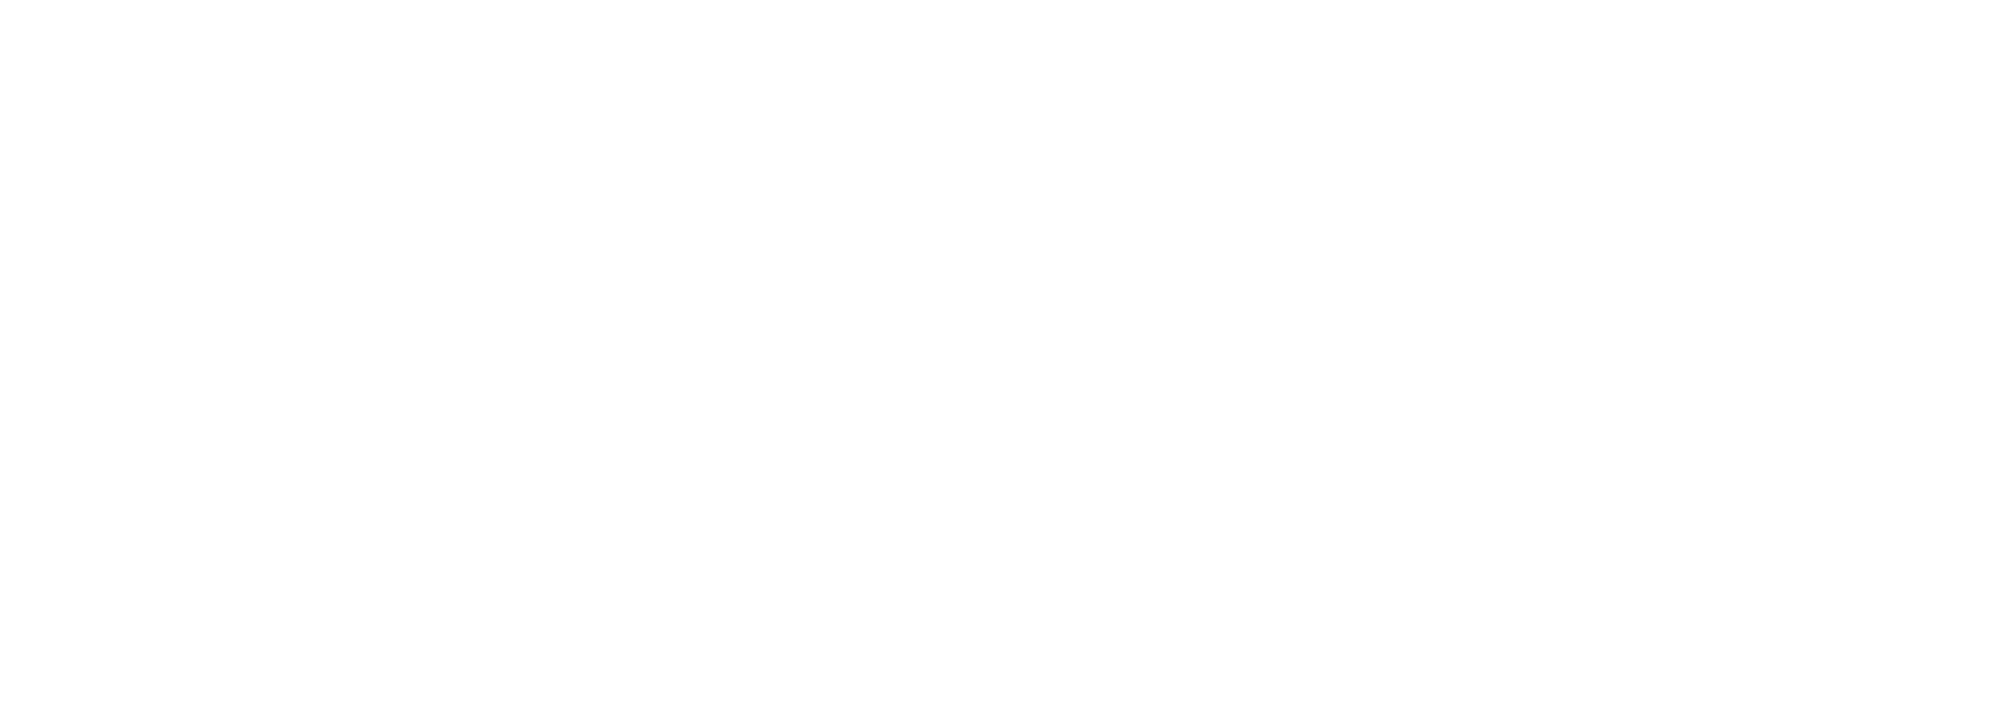 The Impact Playbook